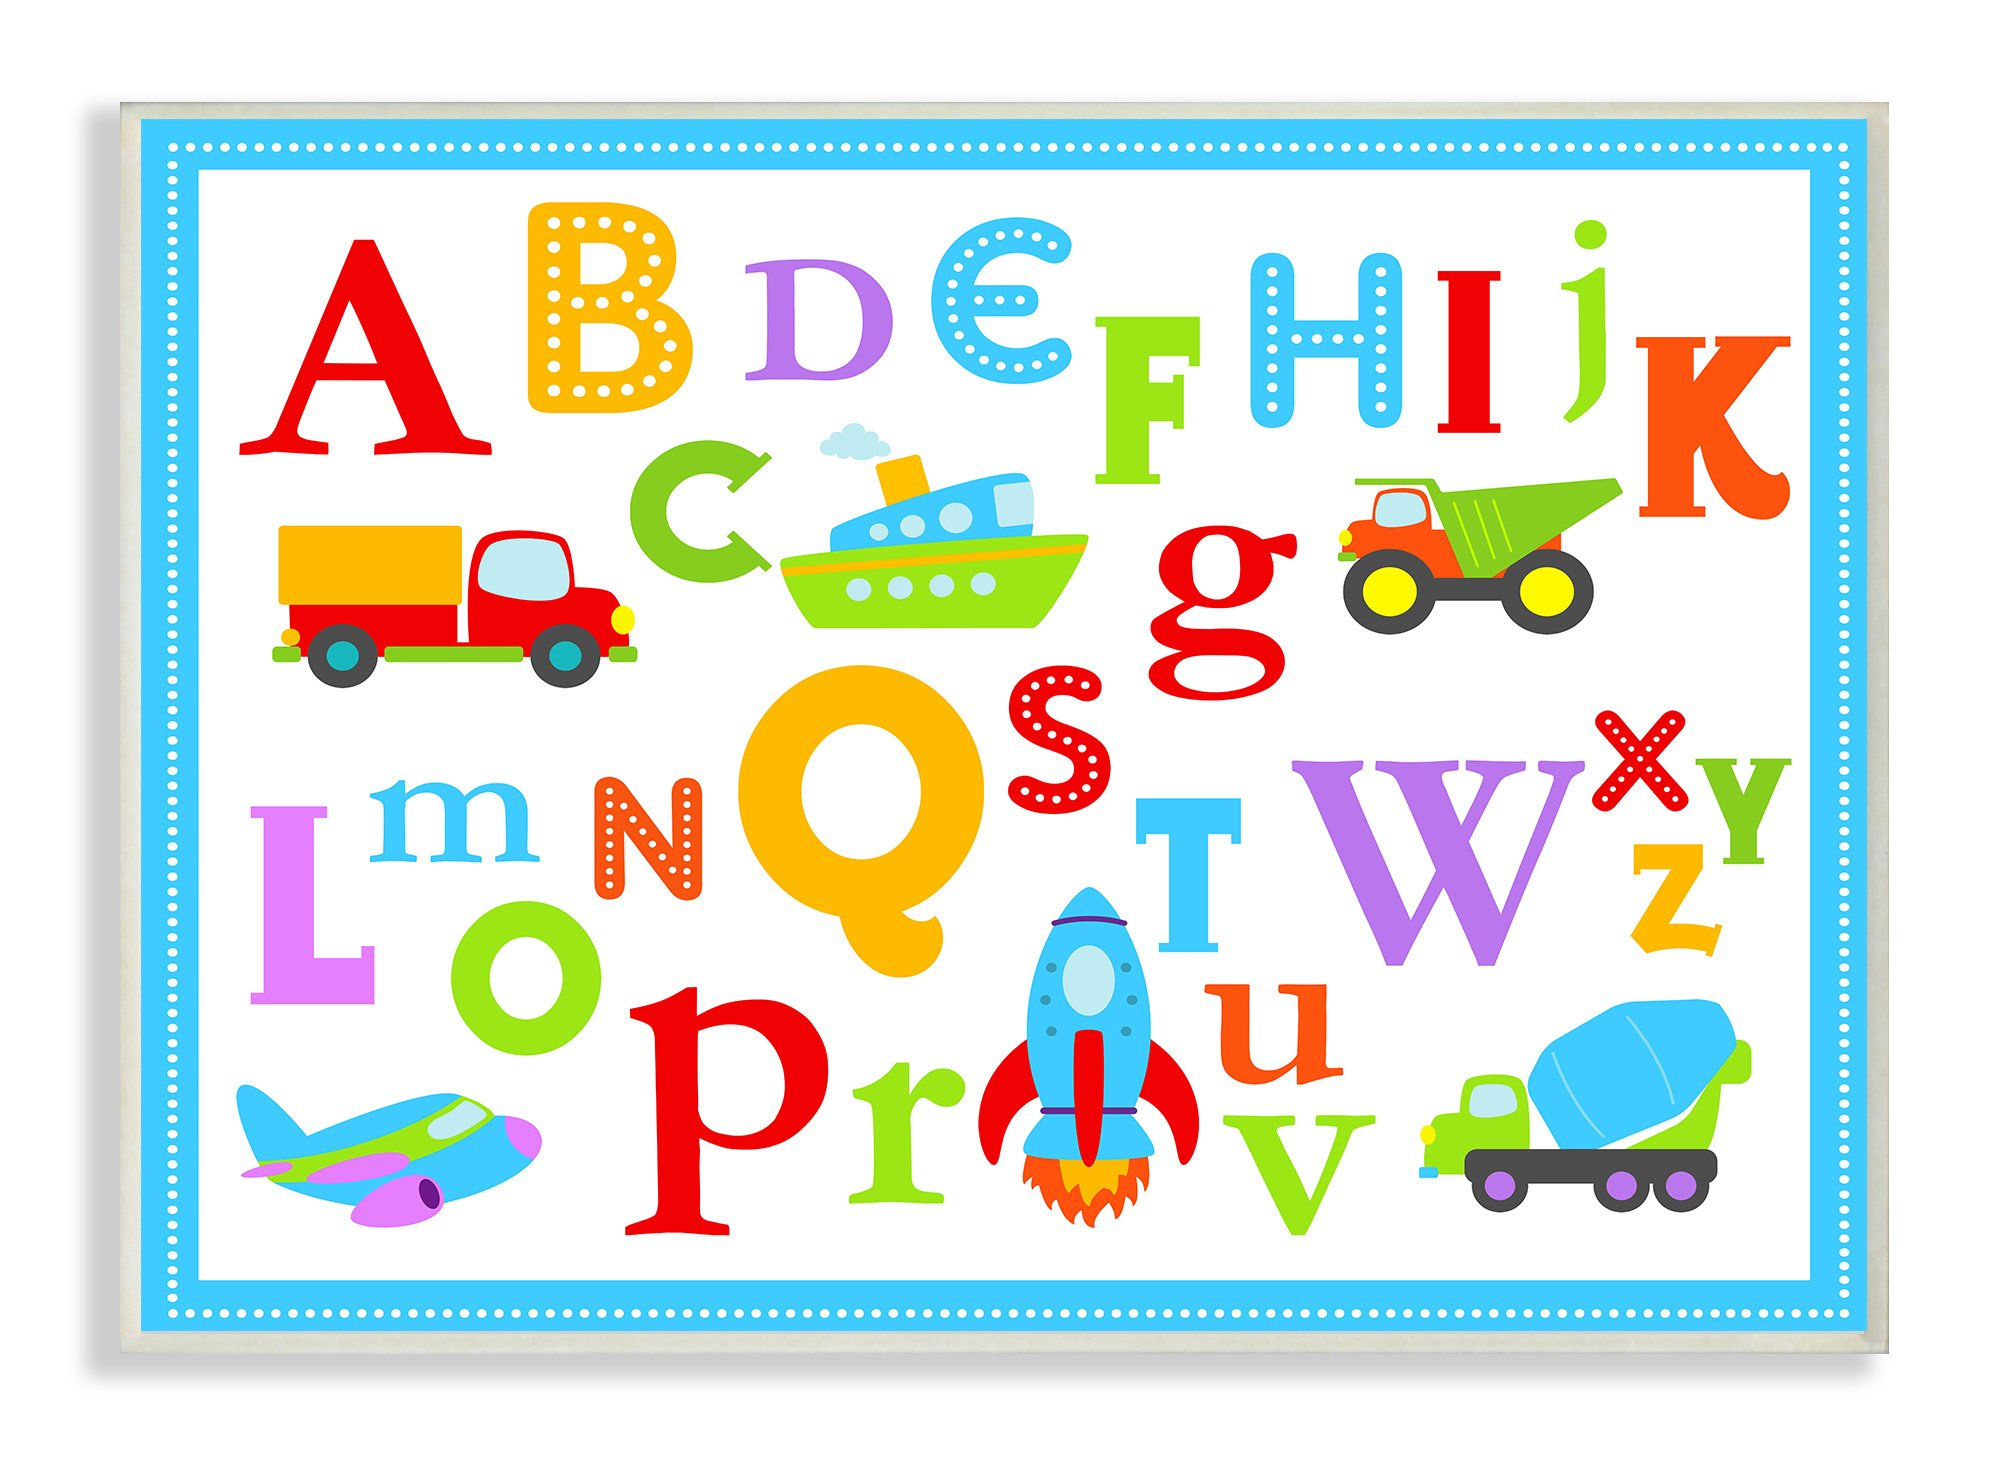 Stupell Home Décor Rainbow Alphabet Transportation Icons Wall Plaque Art, 10 x 0.5 x 15, Proudly Made in USA by The Kids Room by Stupell